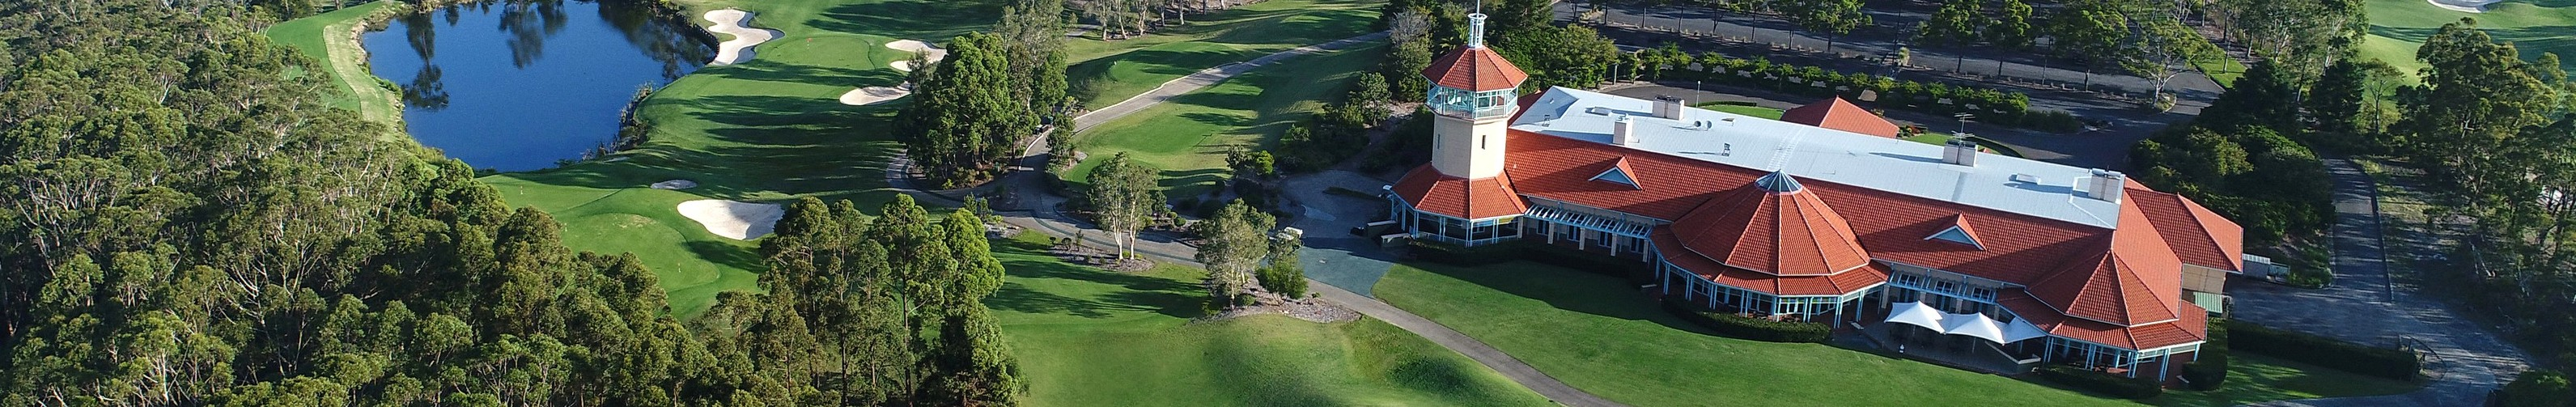 Terrey Hills Golf and Country Club